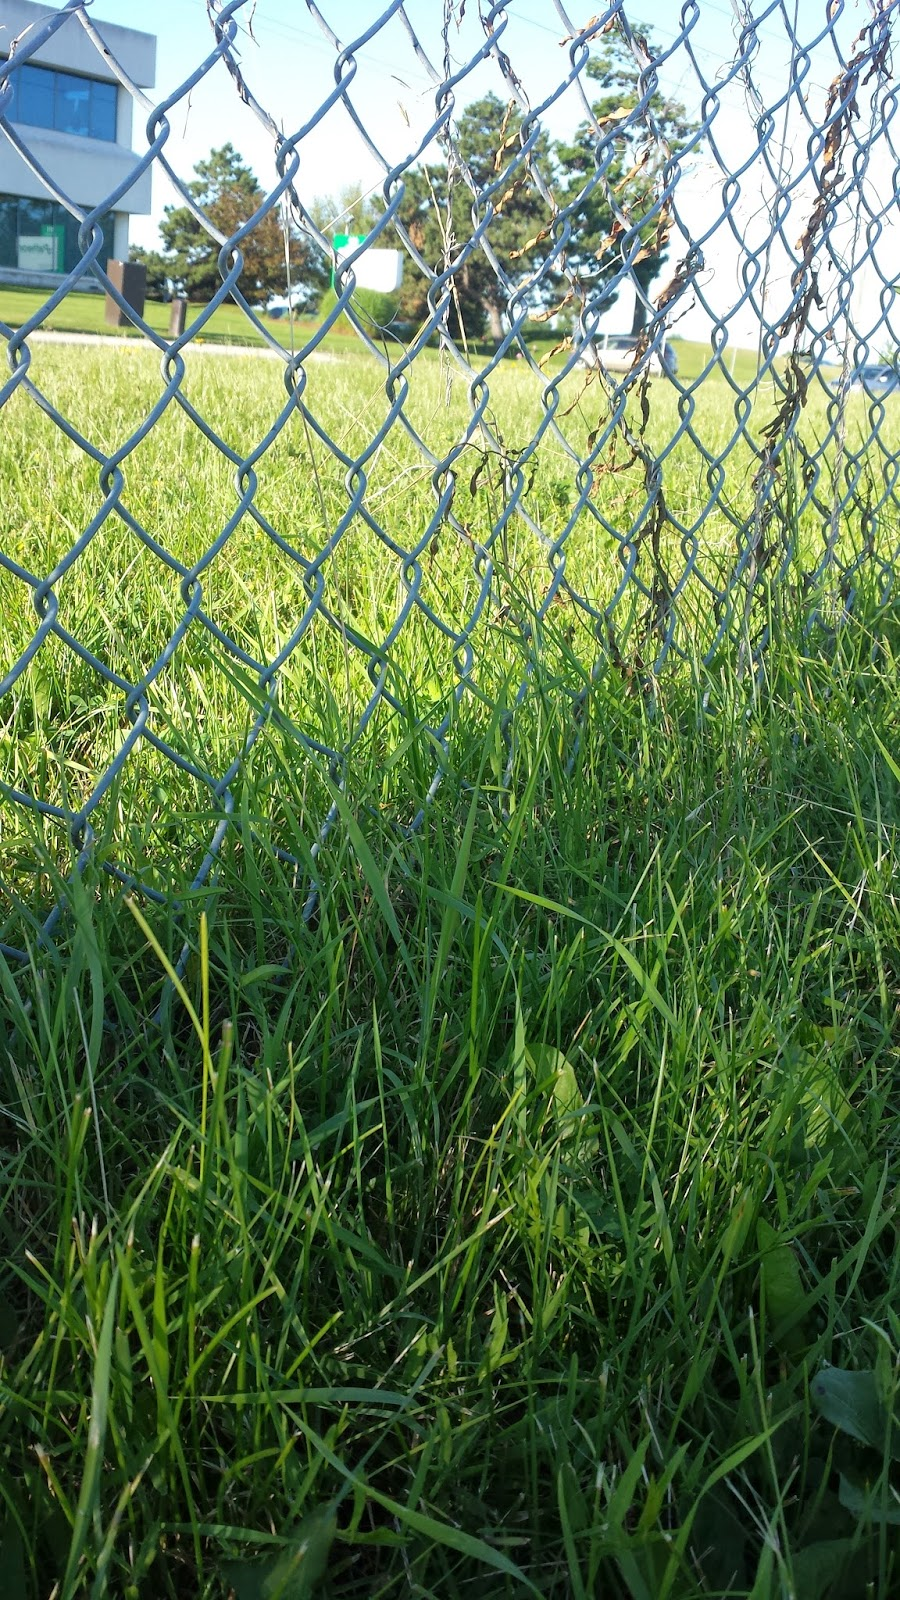 Grass growing up through a chain-link fence